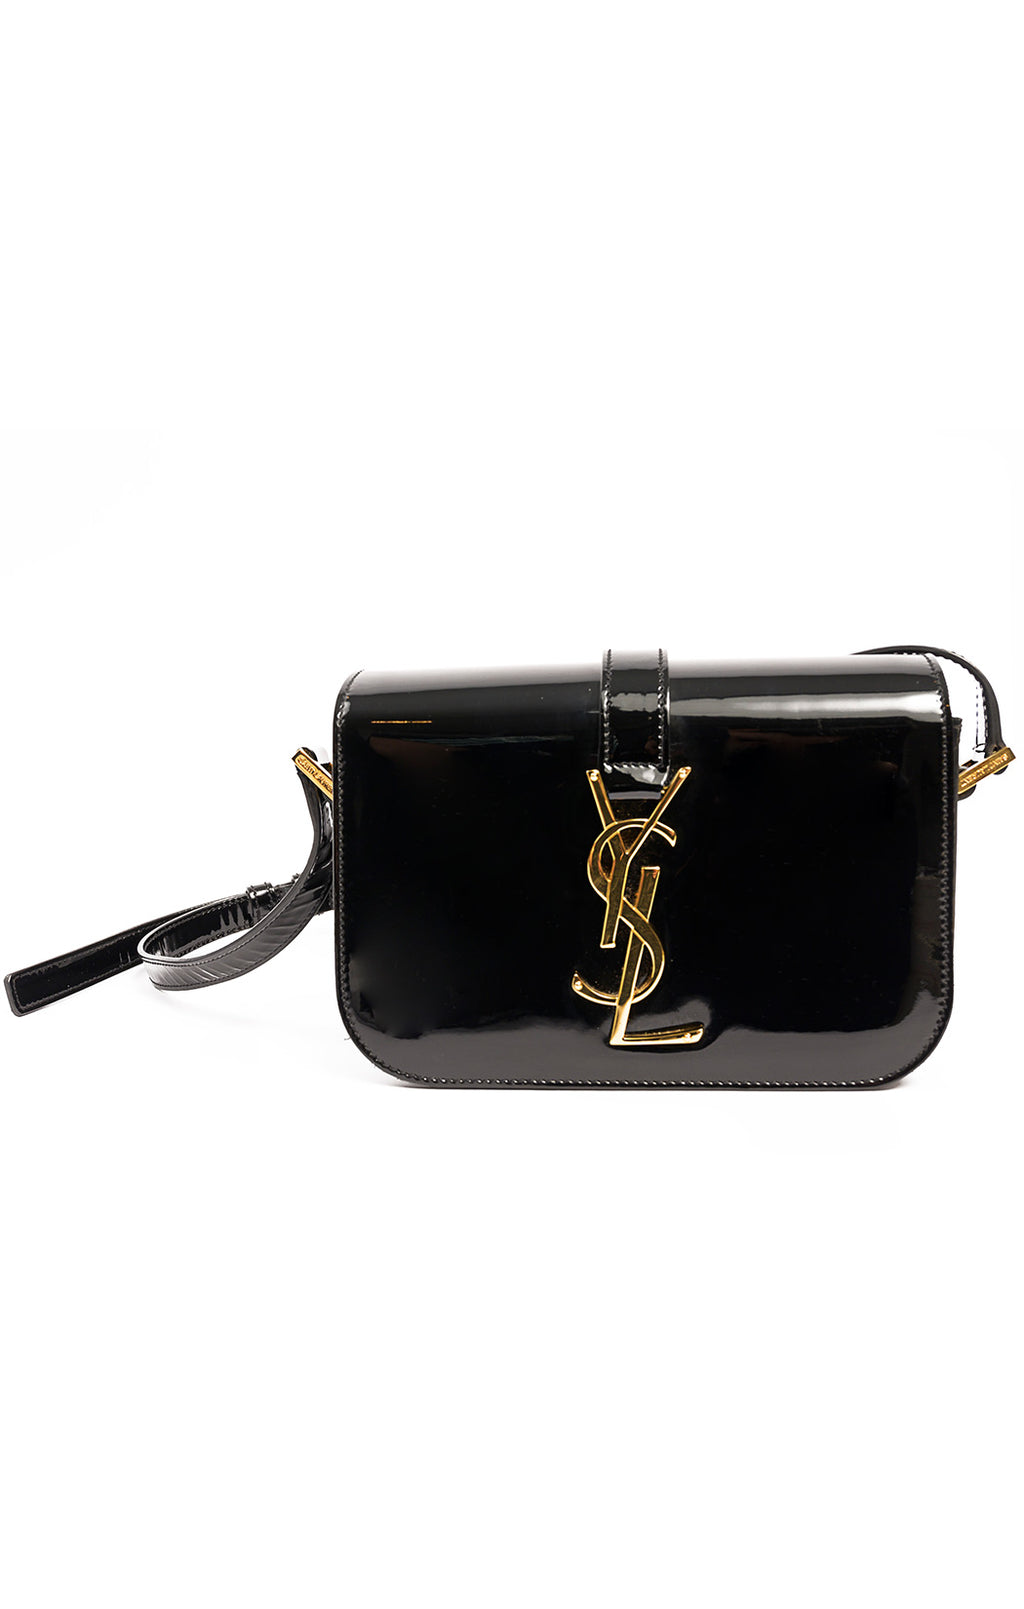 "Front view of YVES SAINT LAURENT  Purse Size: 6.75"" W x 4.75""H x 2"" D"